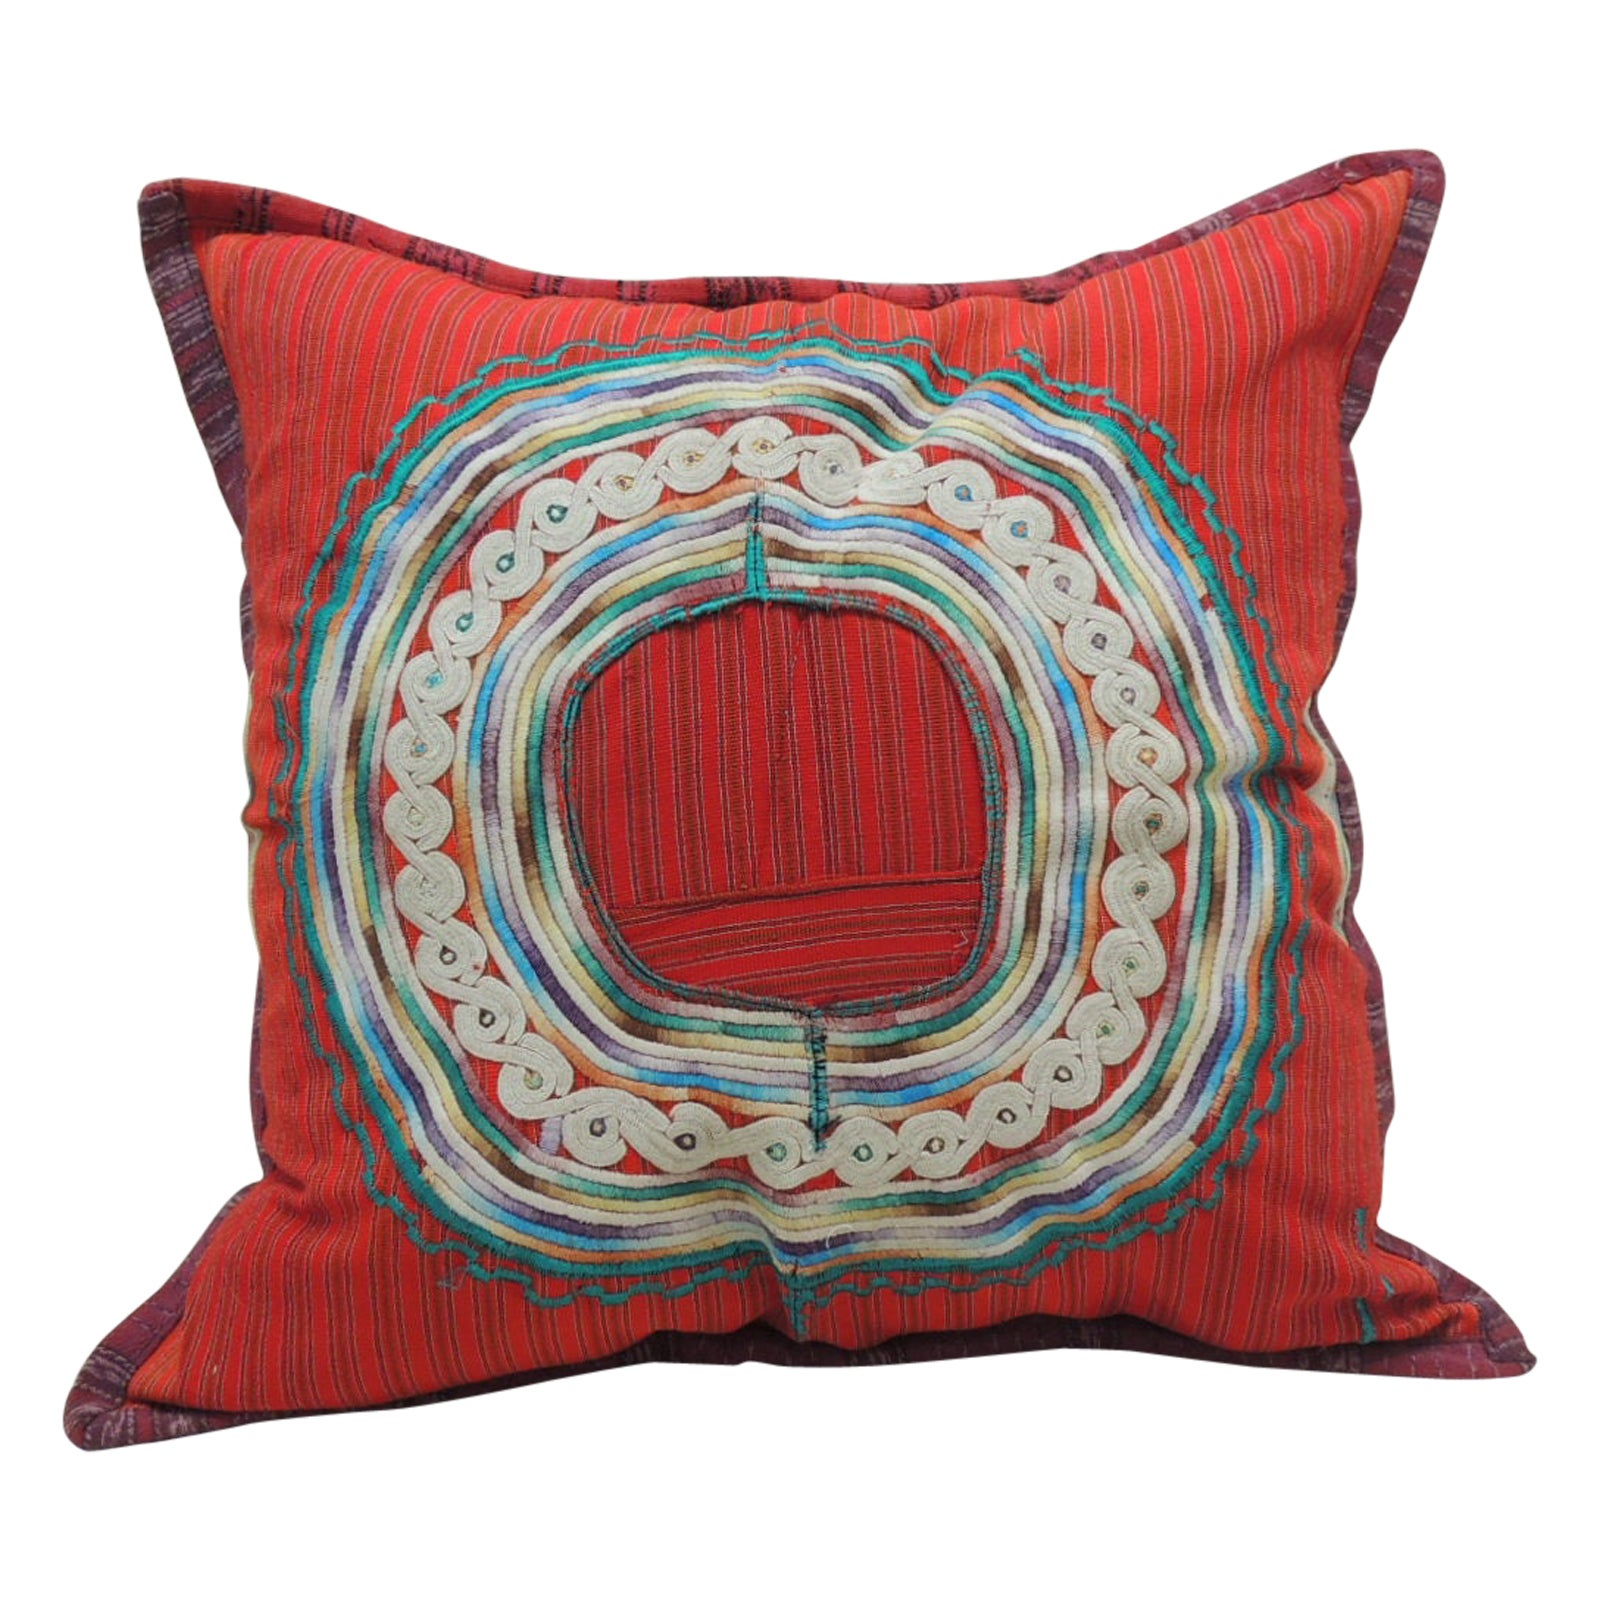 Large Green and Red Guatemalan Embroidered Square Decorative Pillow